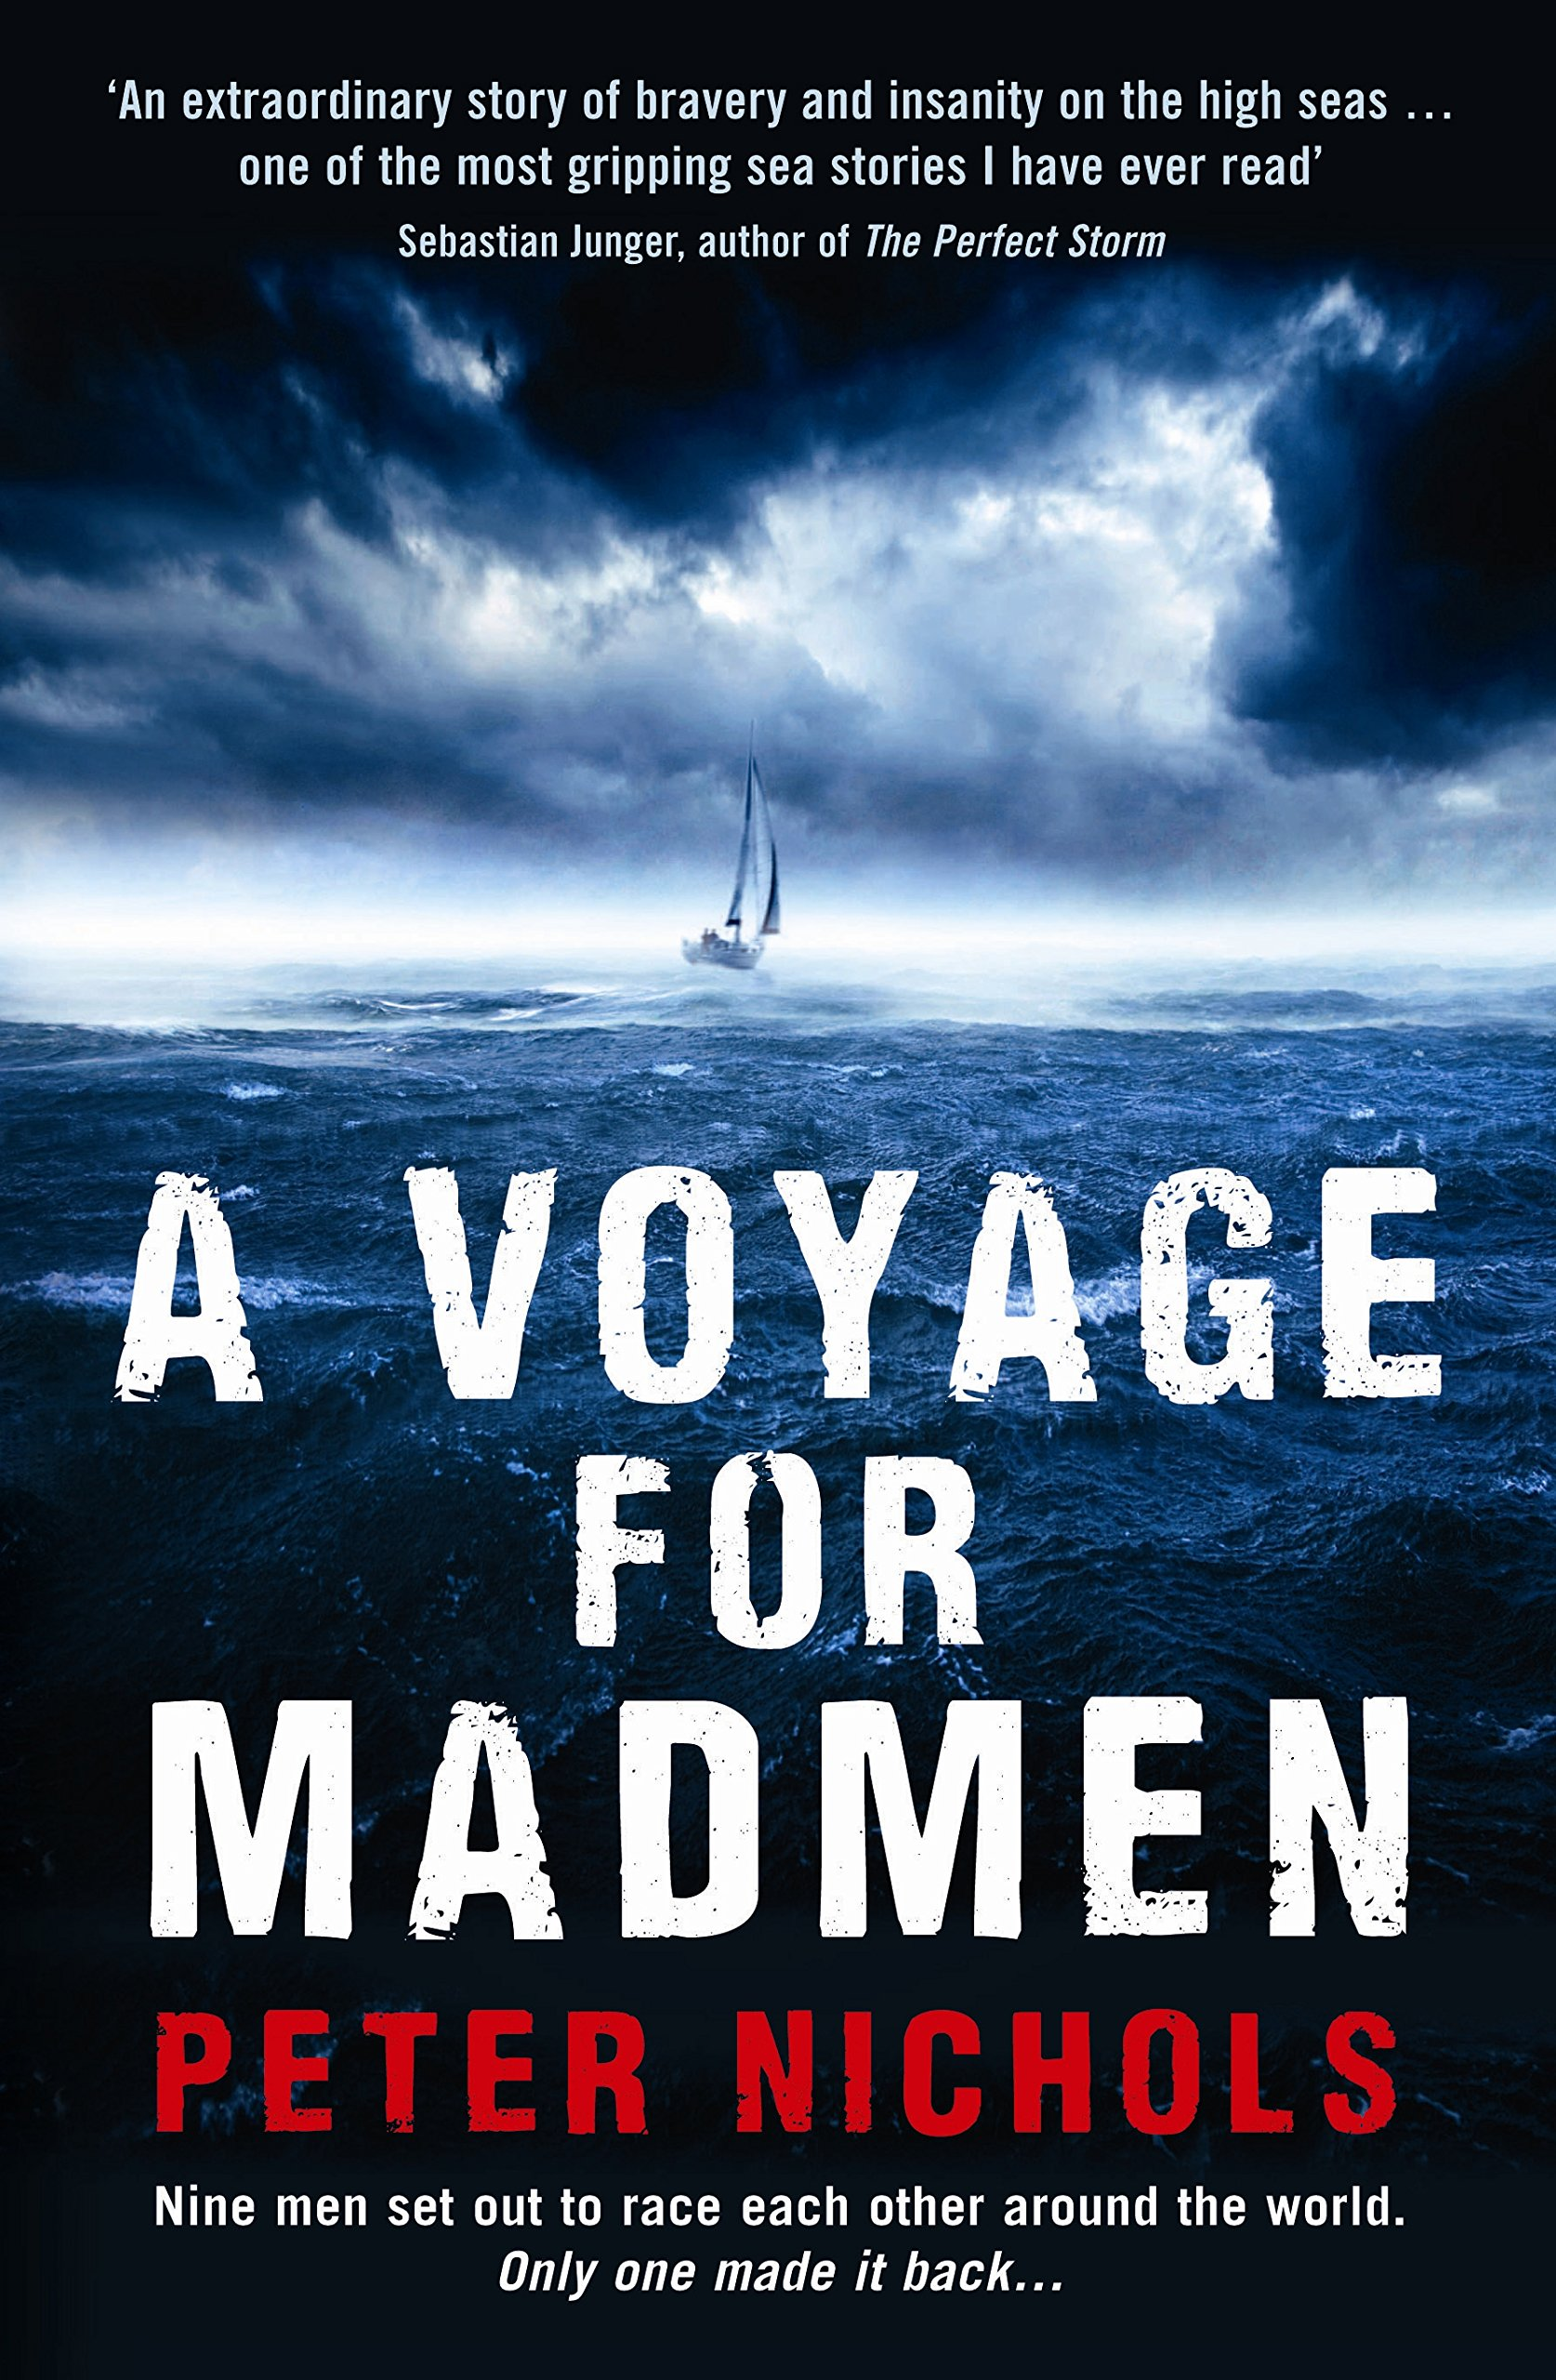 a voyage for madmen nine men set out to race each other around a voyage for madmen nine men set out to race each other around the world only one made it back amazon co uk peter nichols 9781846684432 books